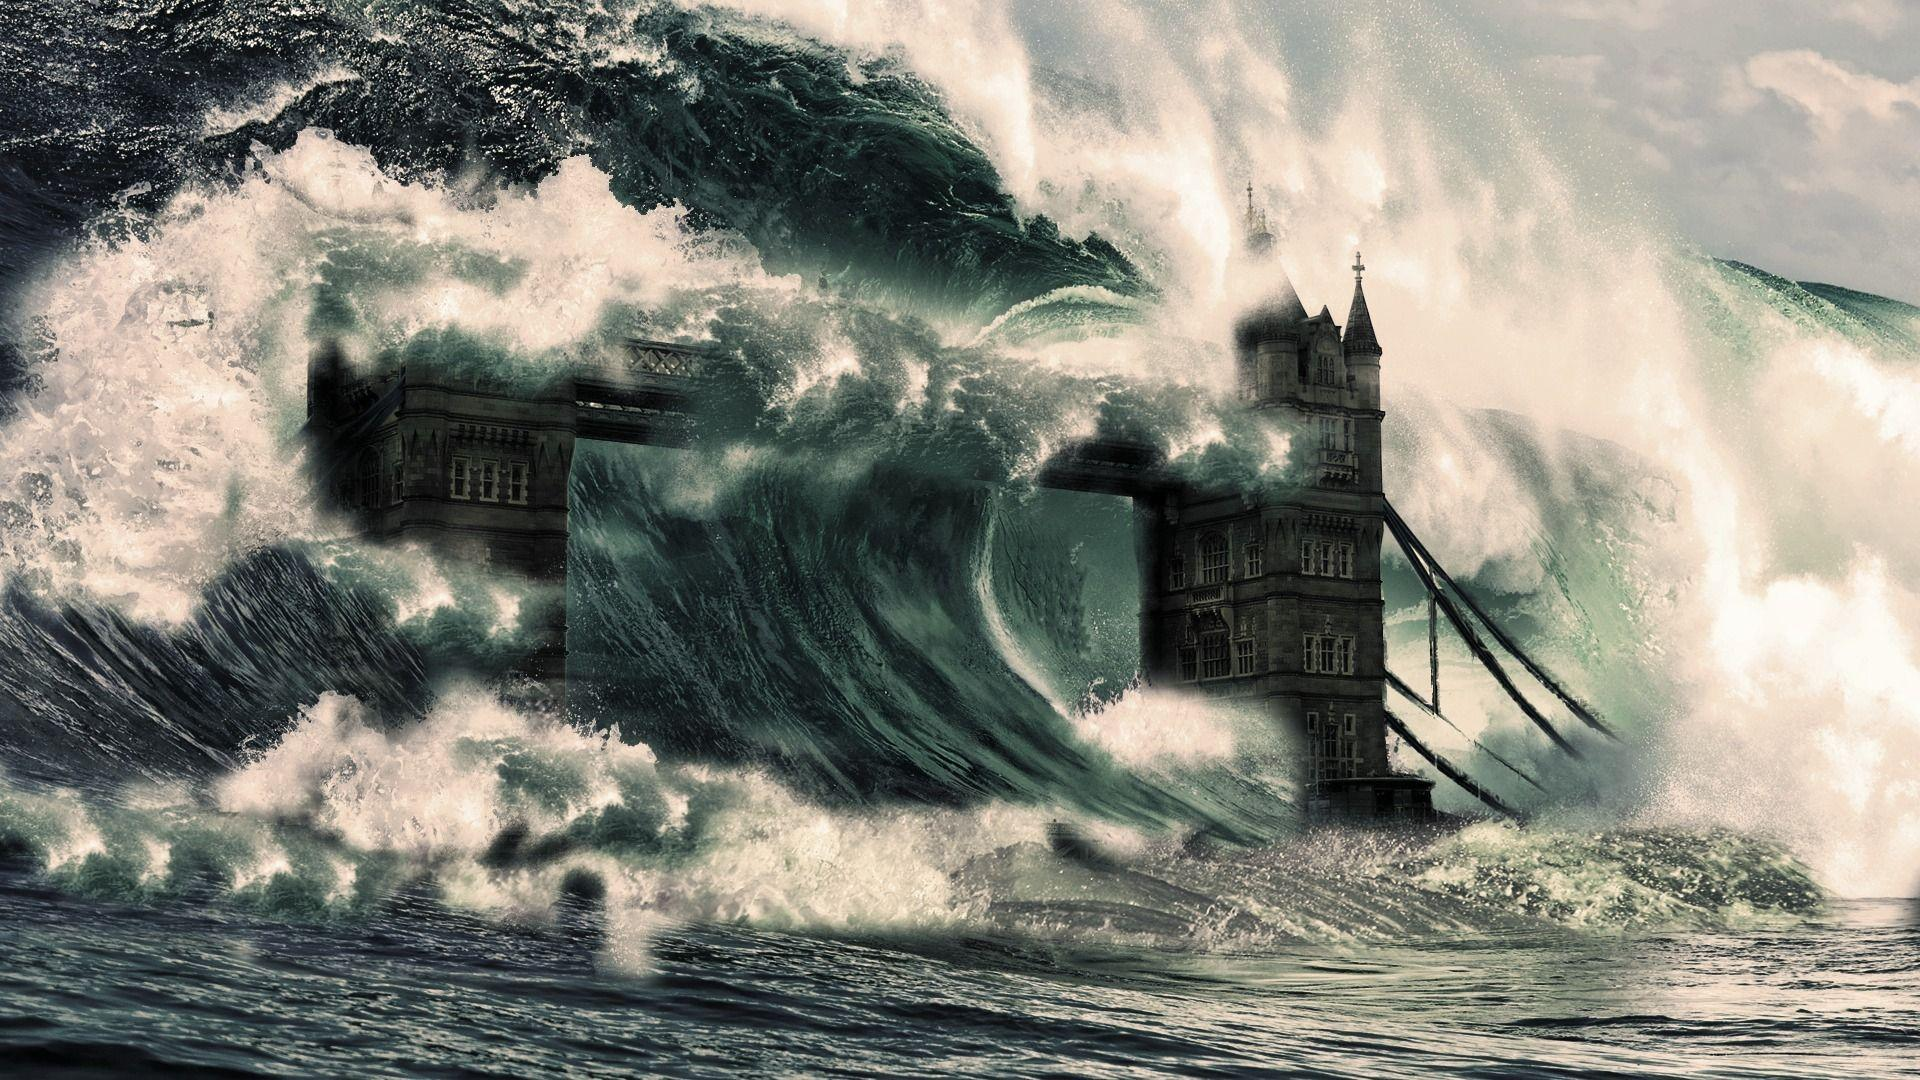 Tsunami Wallpaper 13777 1920x1200 px ~ FreeWallSource.